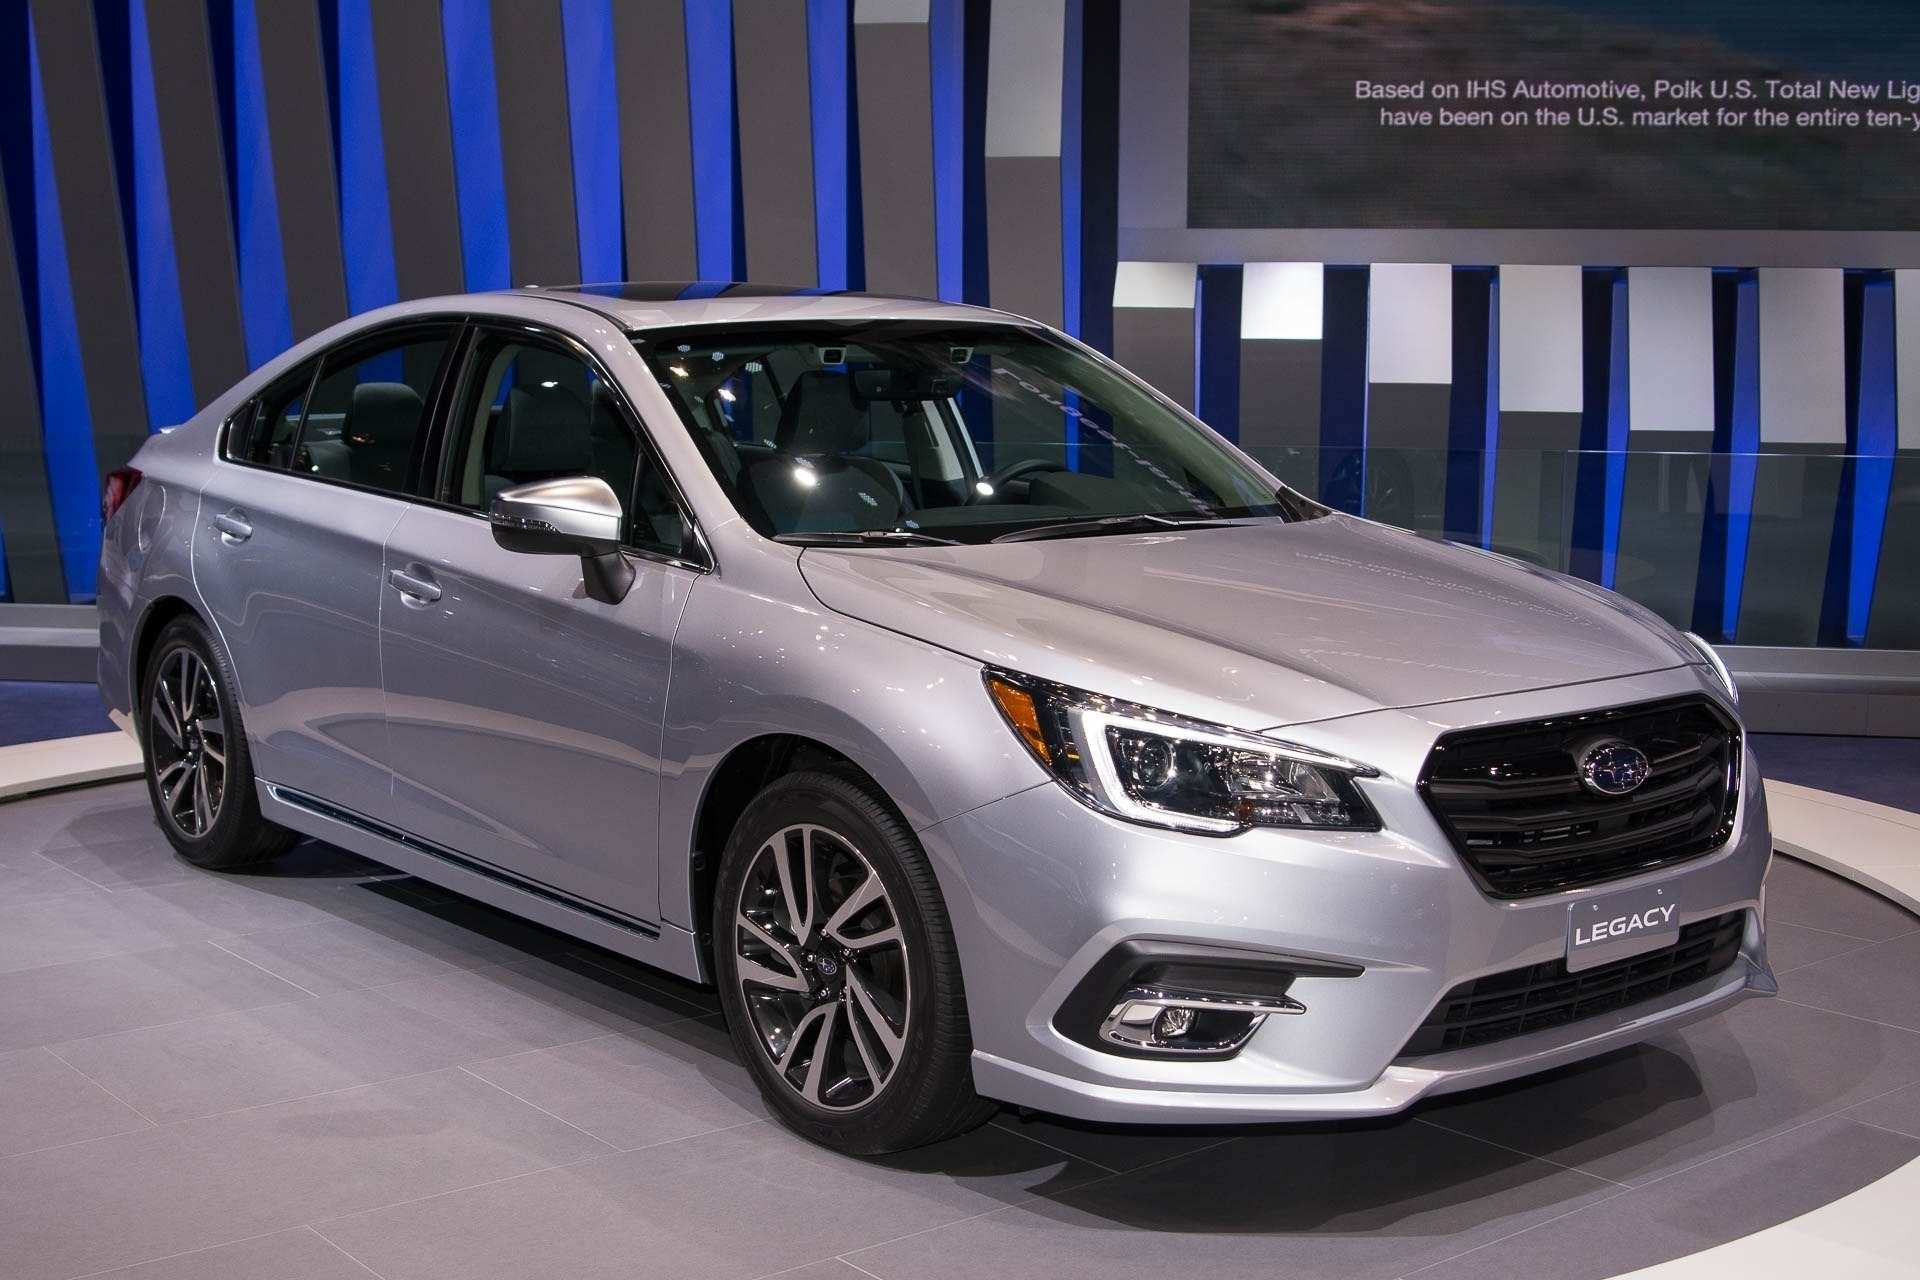 71 All New The New Subaru 2019 Review Specs And Release Date Performance and New Engine by The New Subaru 2019 Review Specs And Release Date